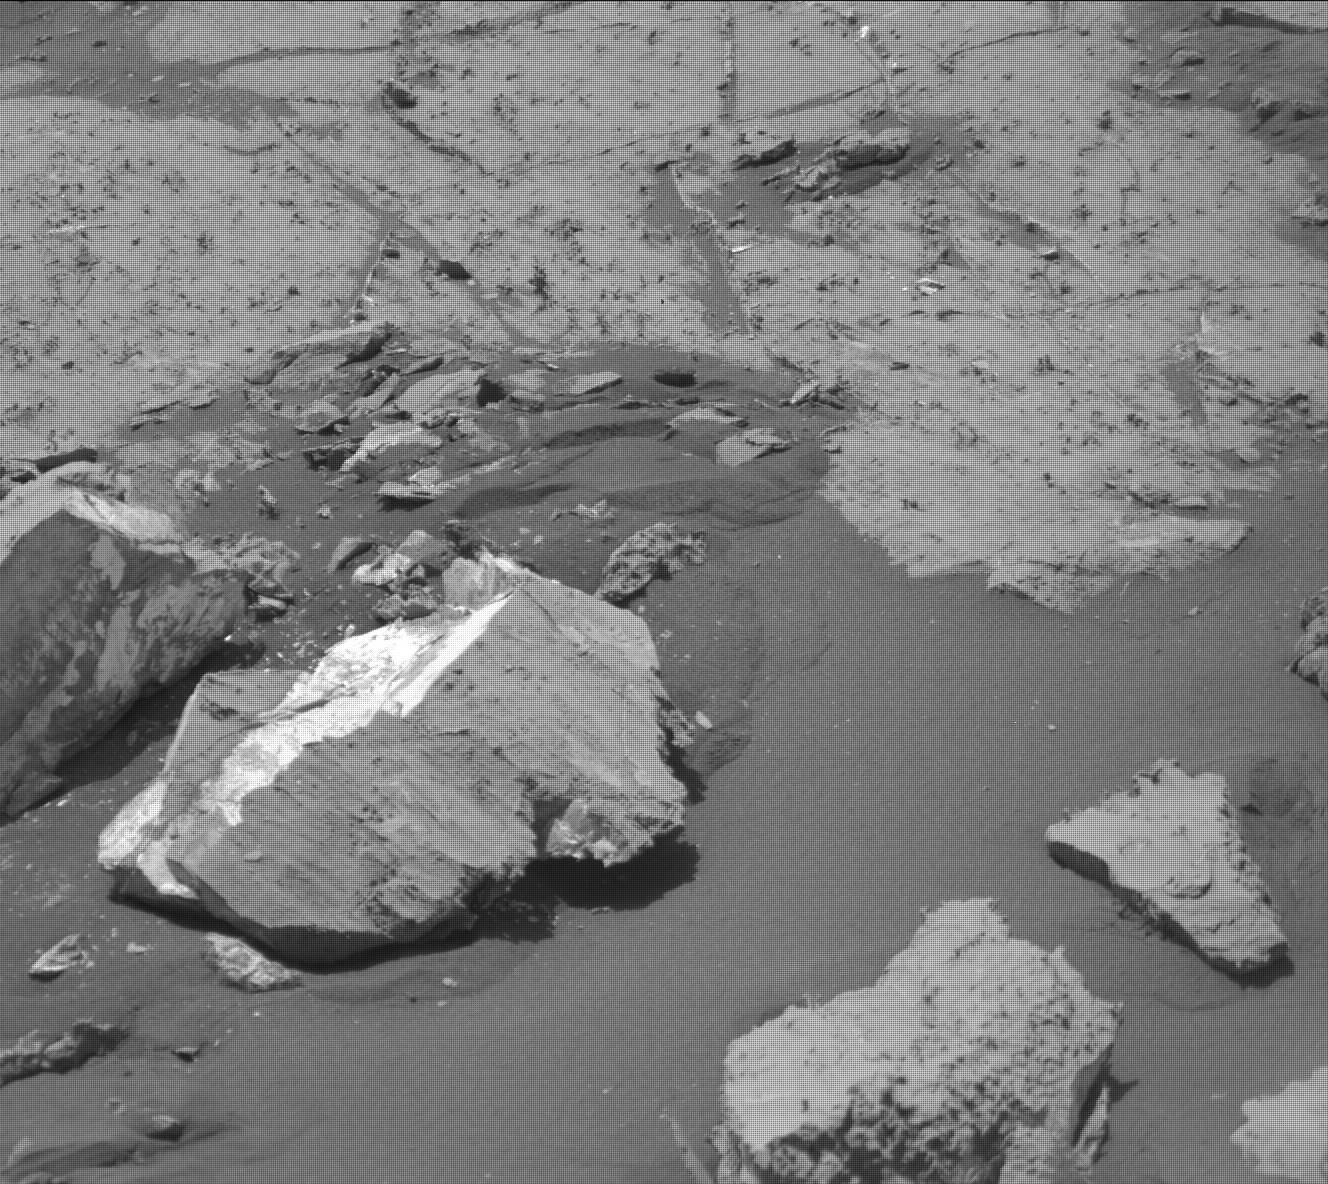 This image shows the wide diversity of rocks at the Hutton site. It was taken by the Mast Camera (Mastcam) onboard NASA's Mars rover Curiosity on Sol 2680.